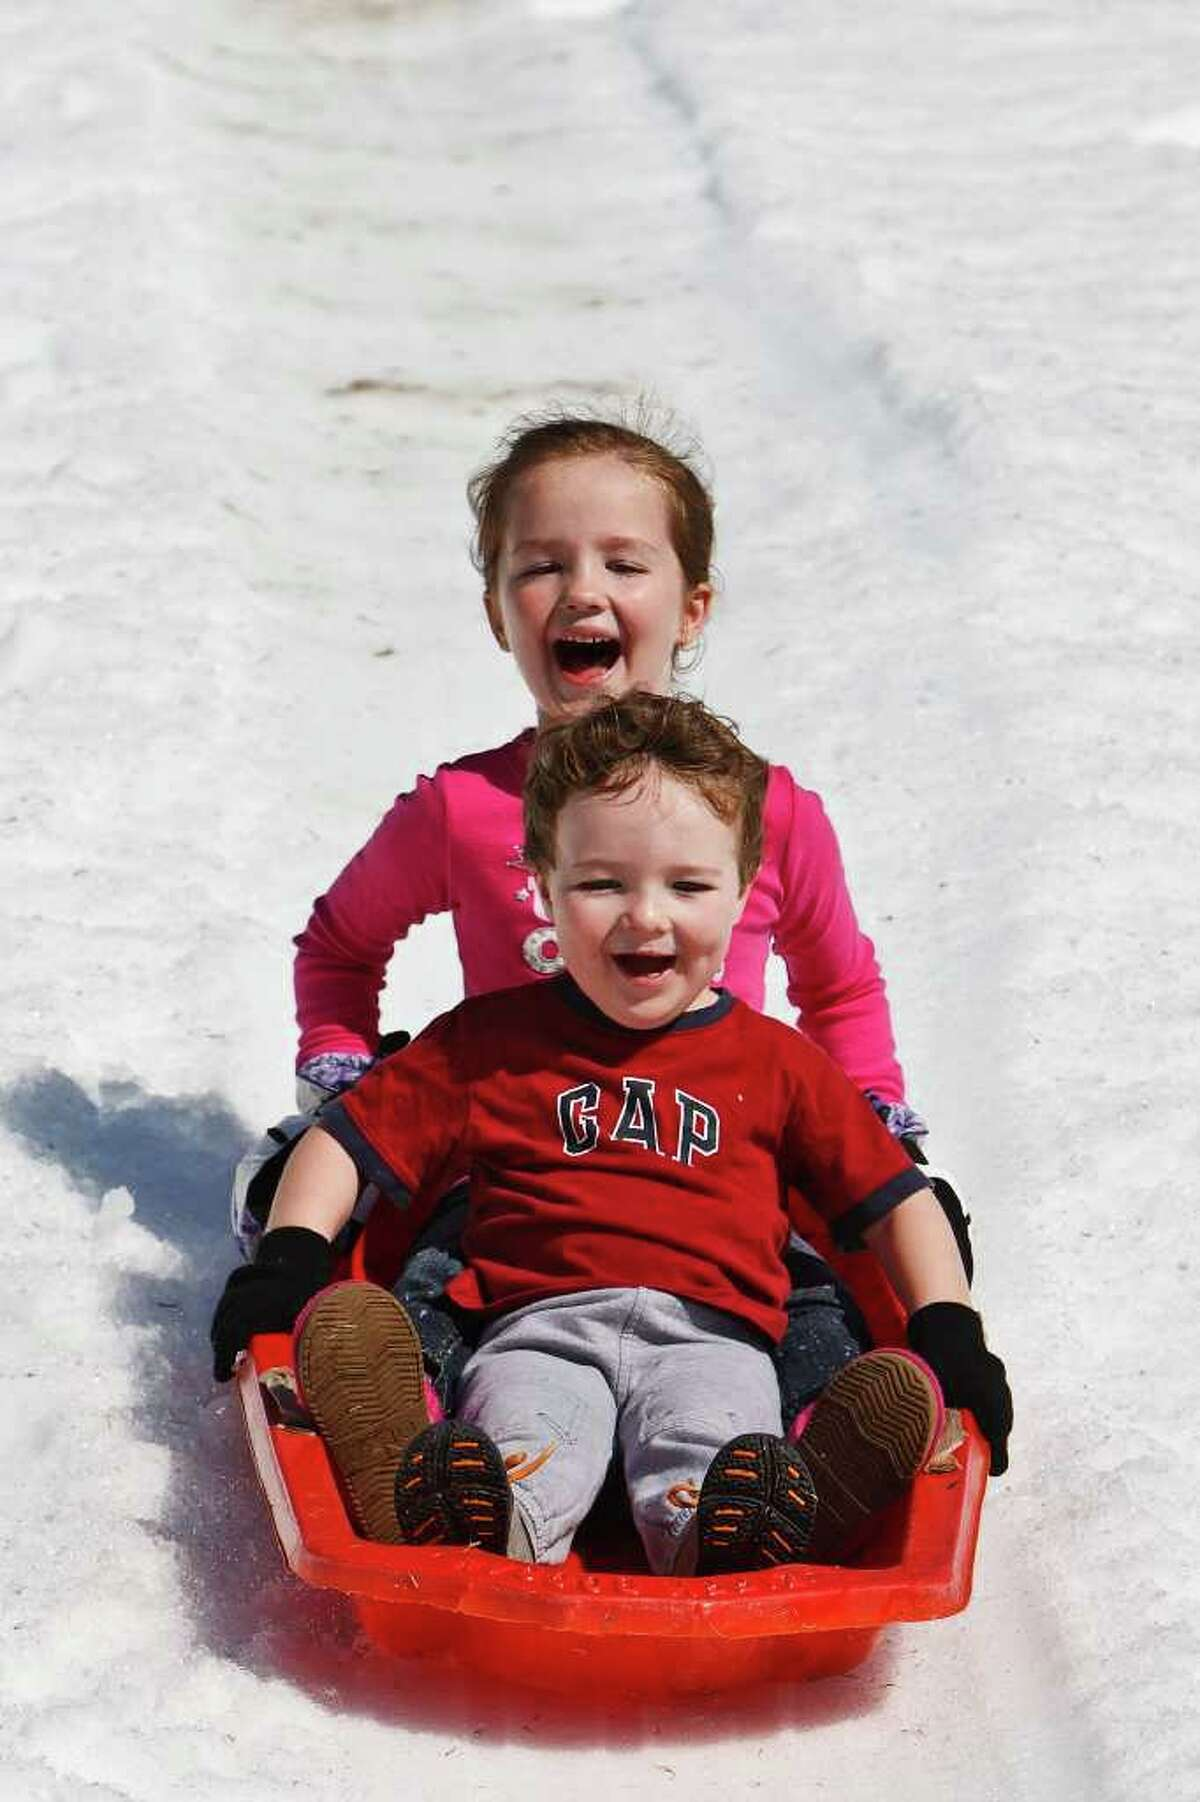 Stone Fitch (3) and his sister Sophia (6) ride a sled down the Pure Party Ice Snow Slide during the Castle Hill's Homeowners Association's 4th annual Snow Day at the Commons of Castle Hills on Jan. 30, 2011. Photo by Marvin Pfeiffer